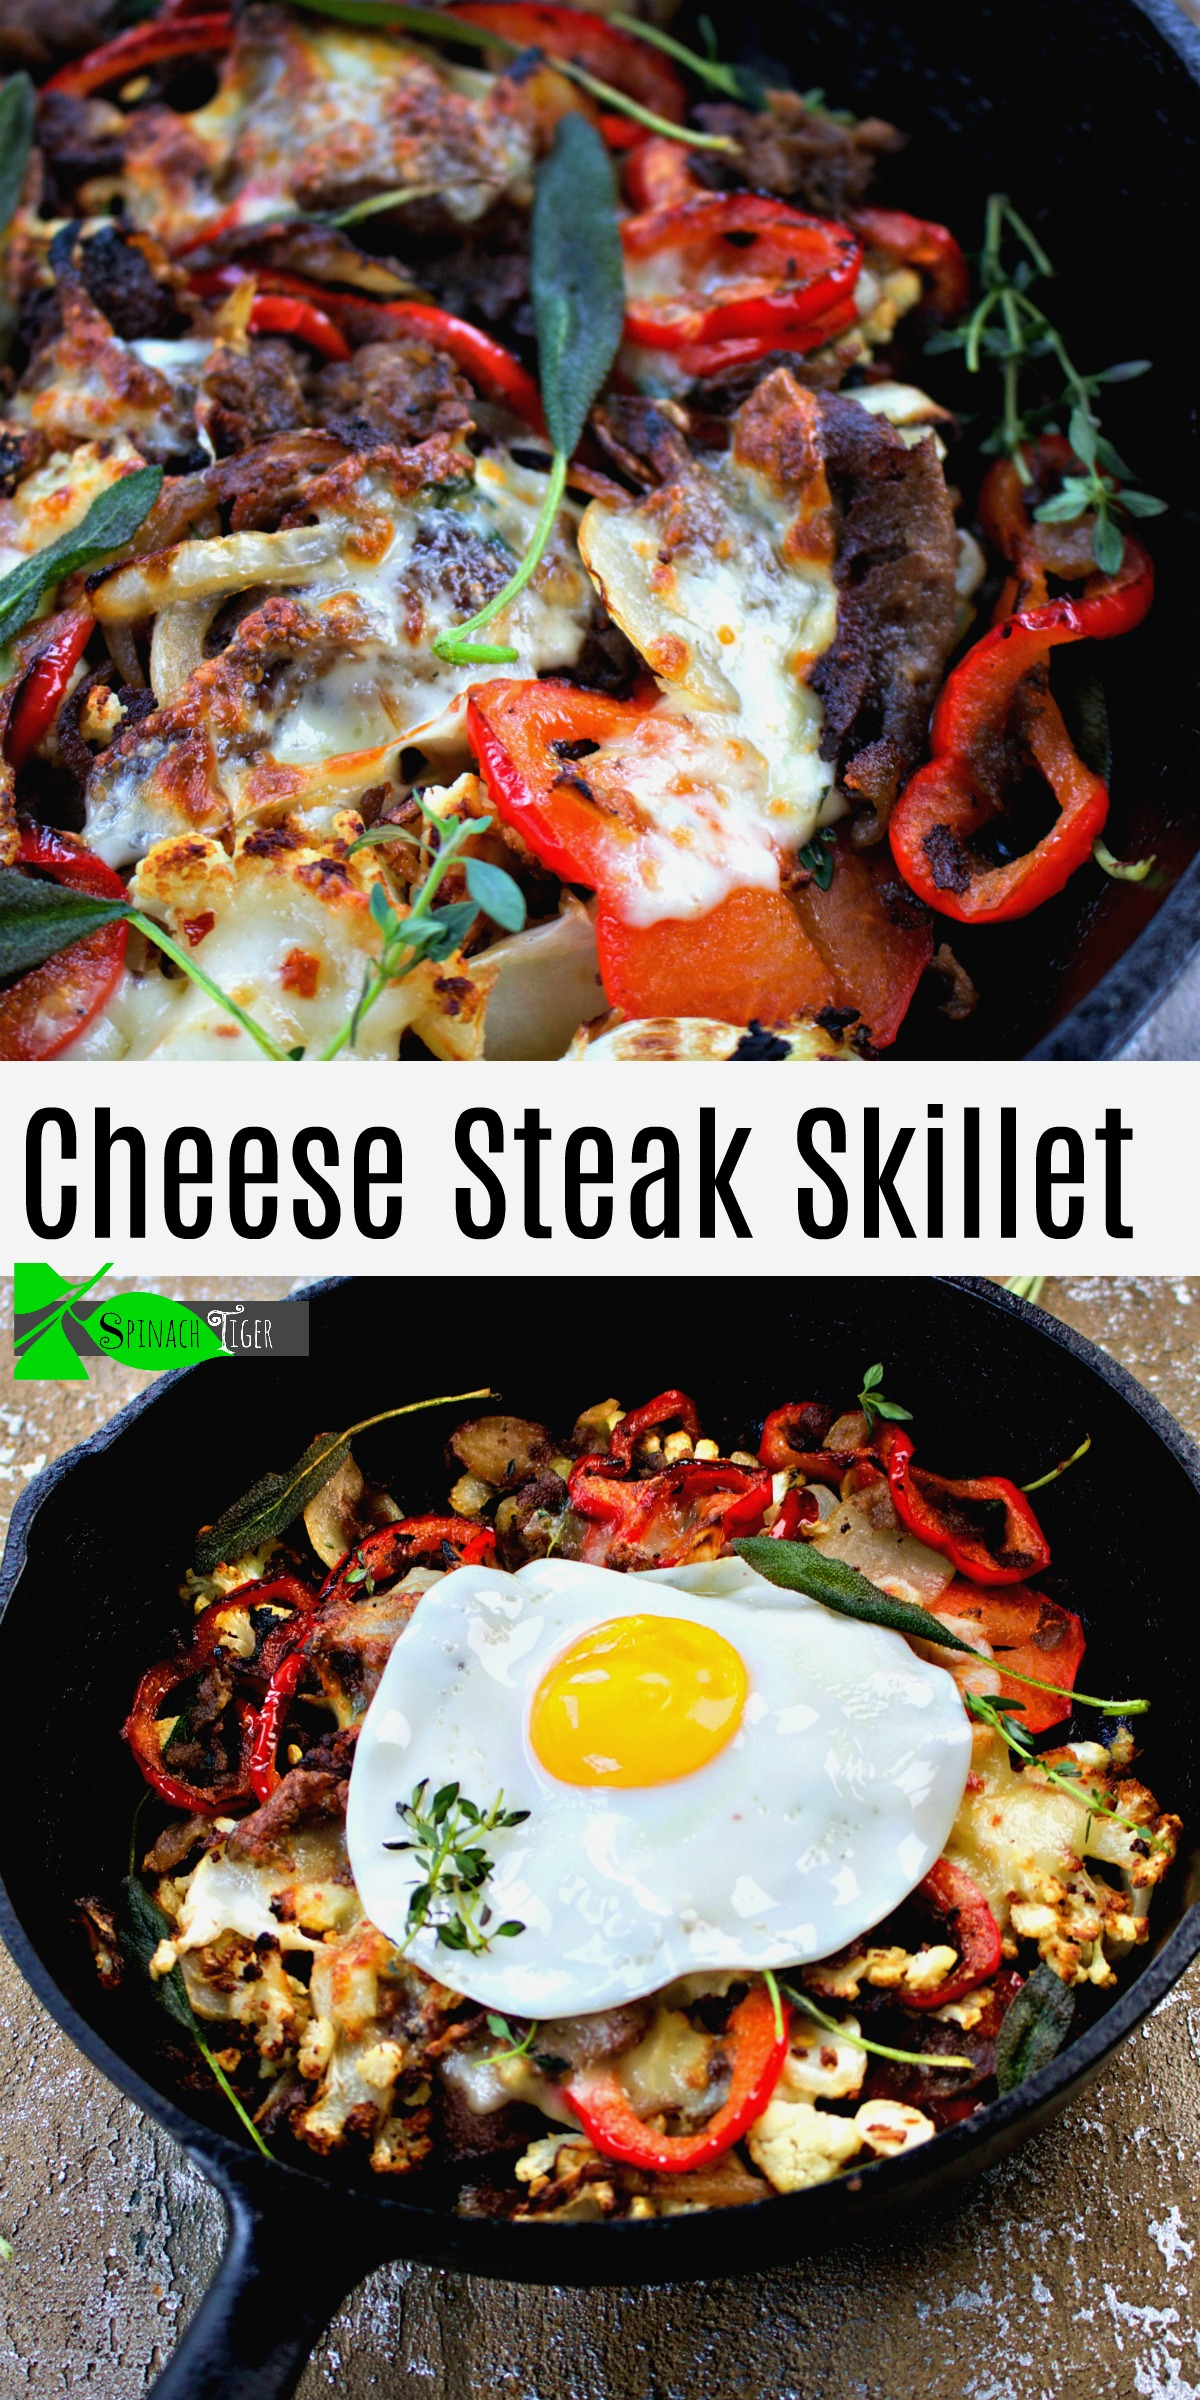 How to Make Cheese Steak Skillet from Spinach Tiger